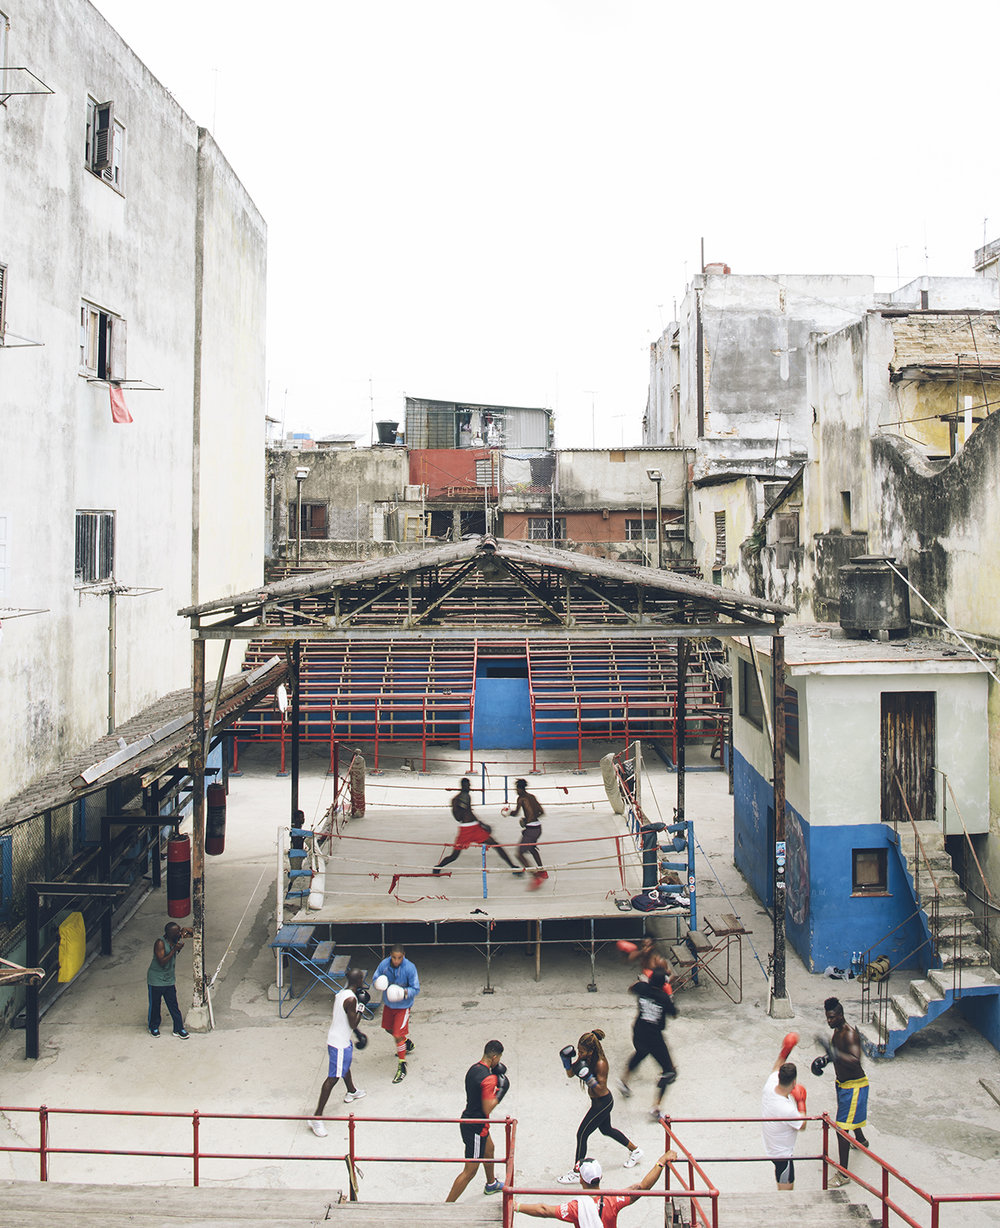 Training at Rafael Trejo Boxing Gym, Cuba's national training center in Havana.